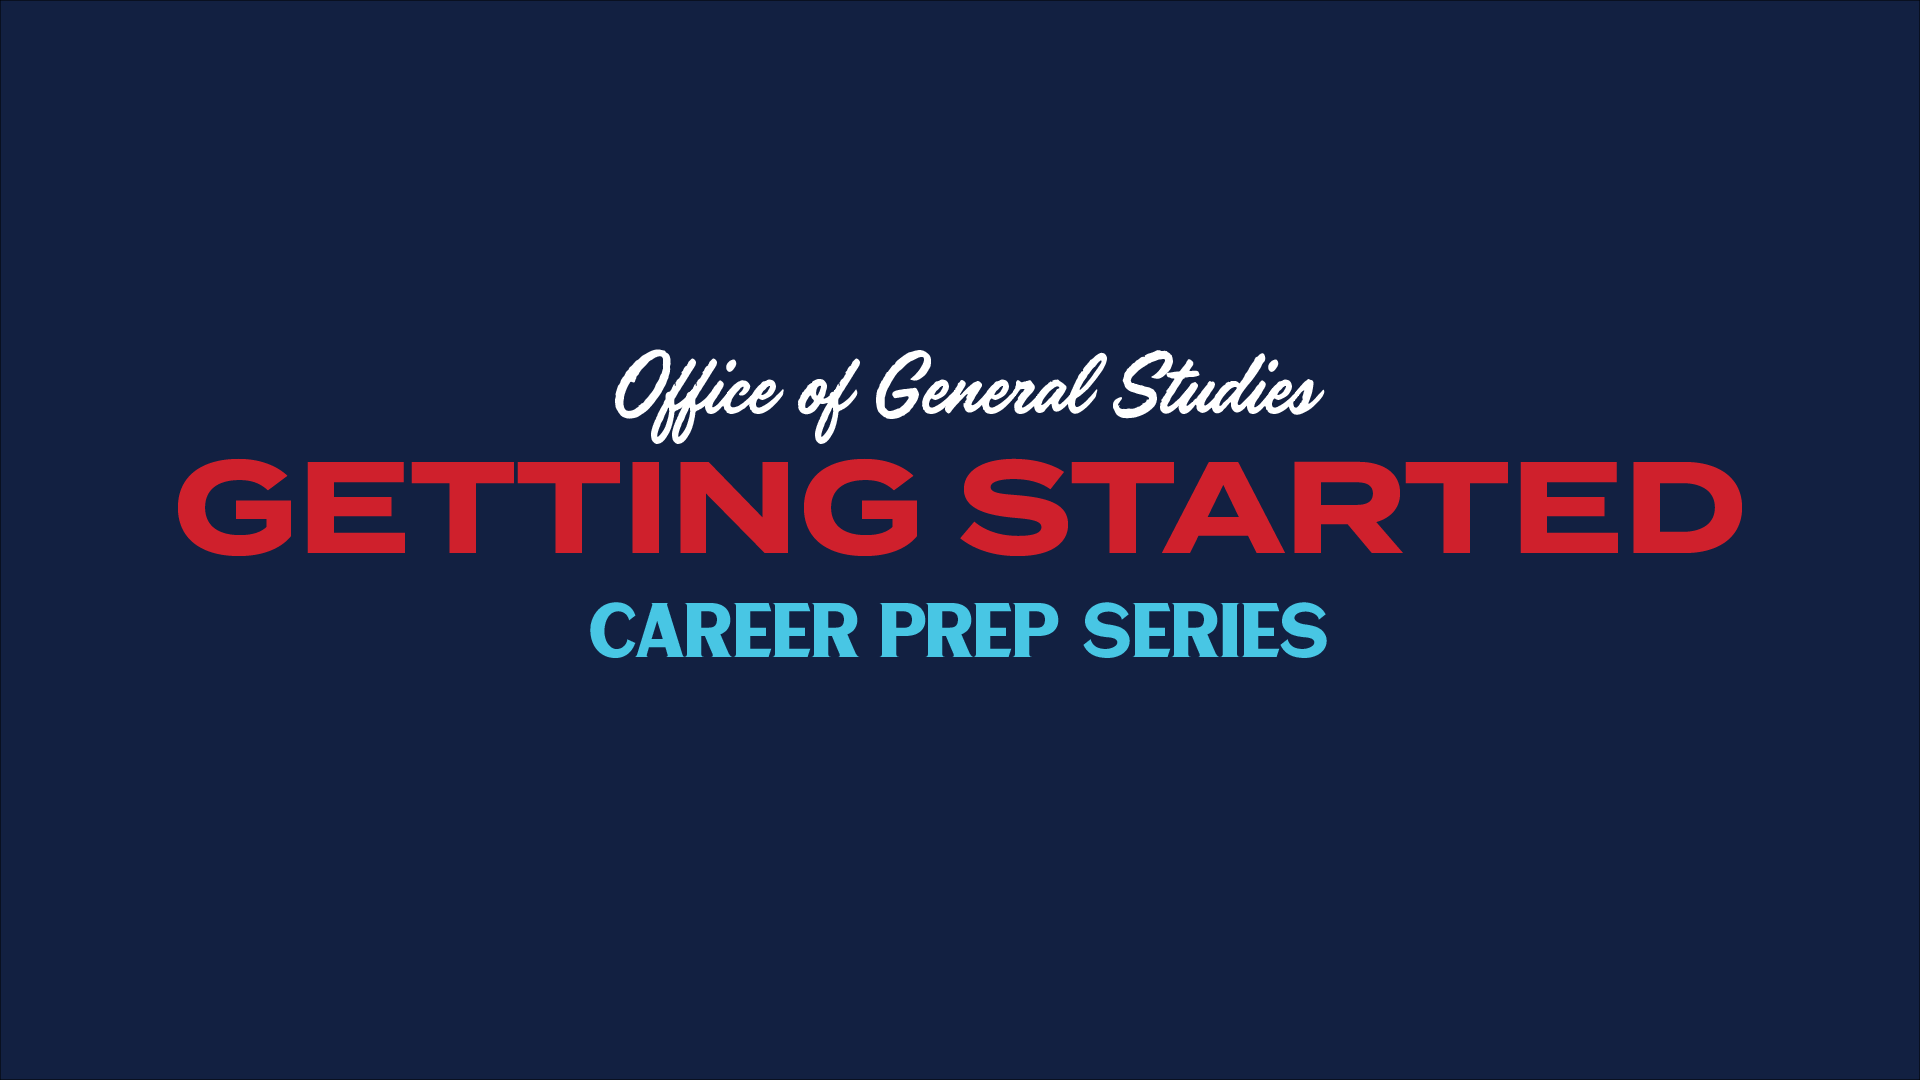 graphic for getting started career prep video